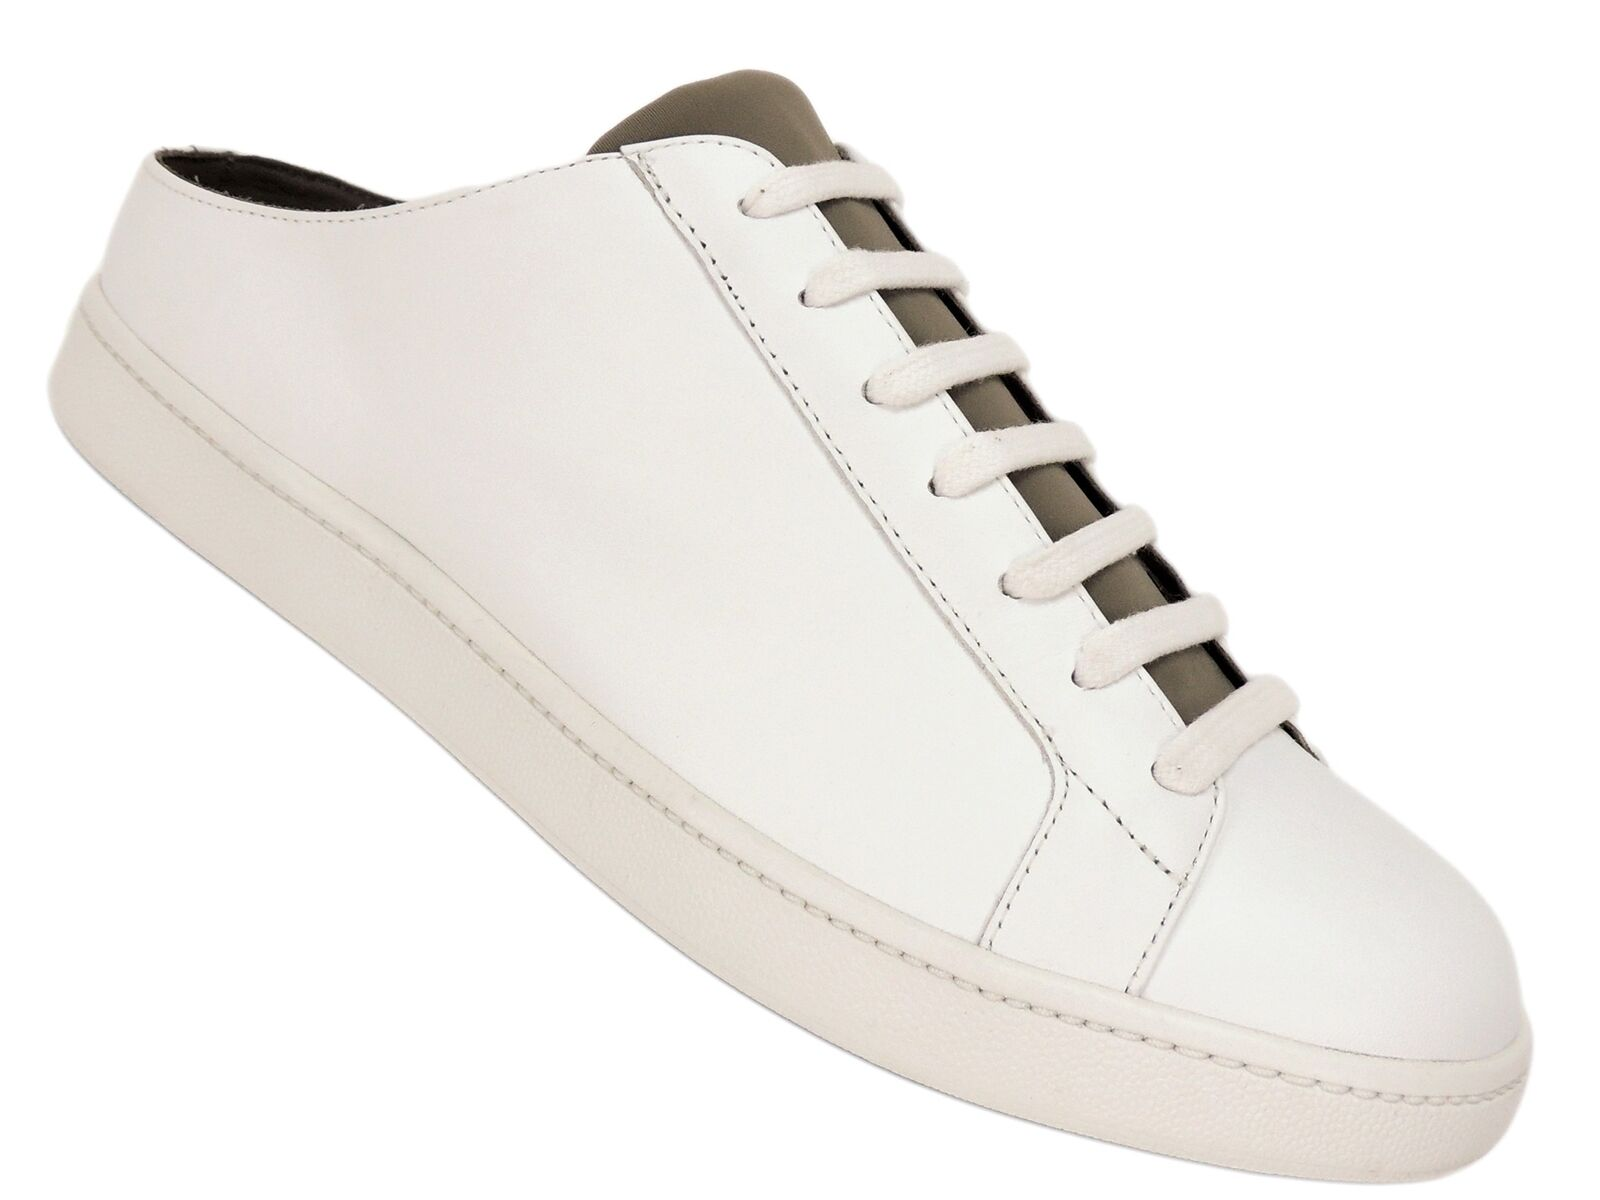 Vince Women's Varley White Leather Sneakers White/Woodsmoke Size 9 M